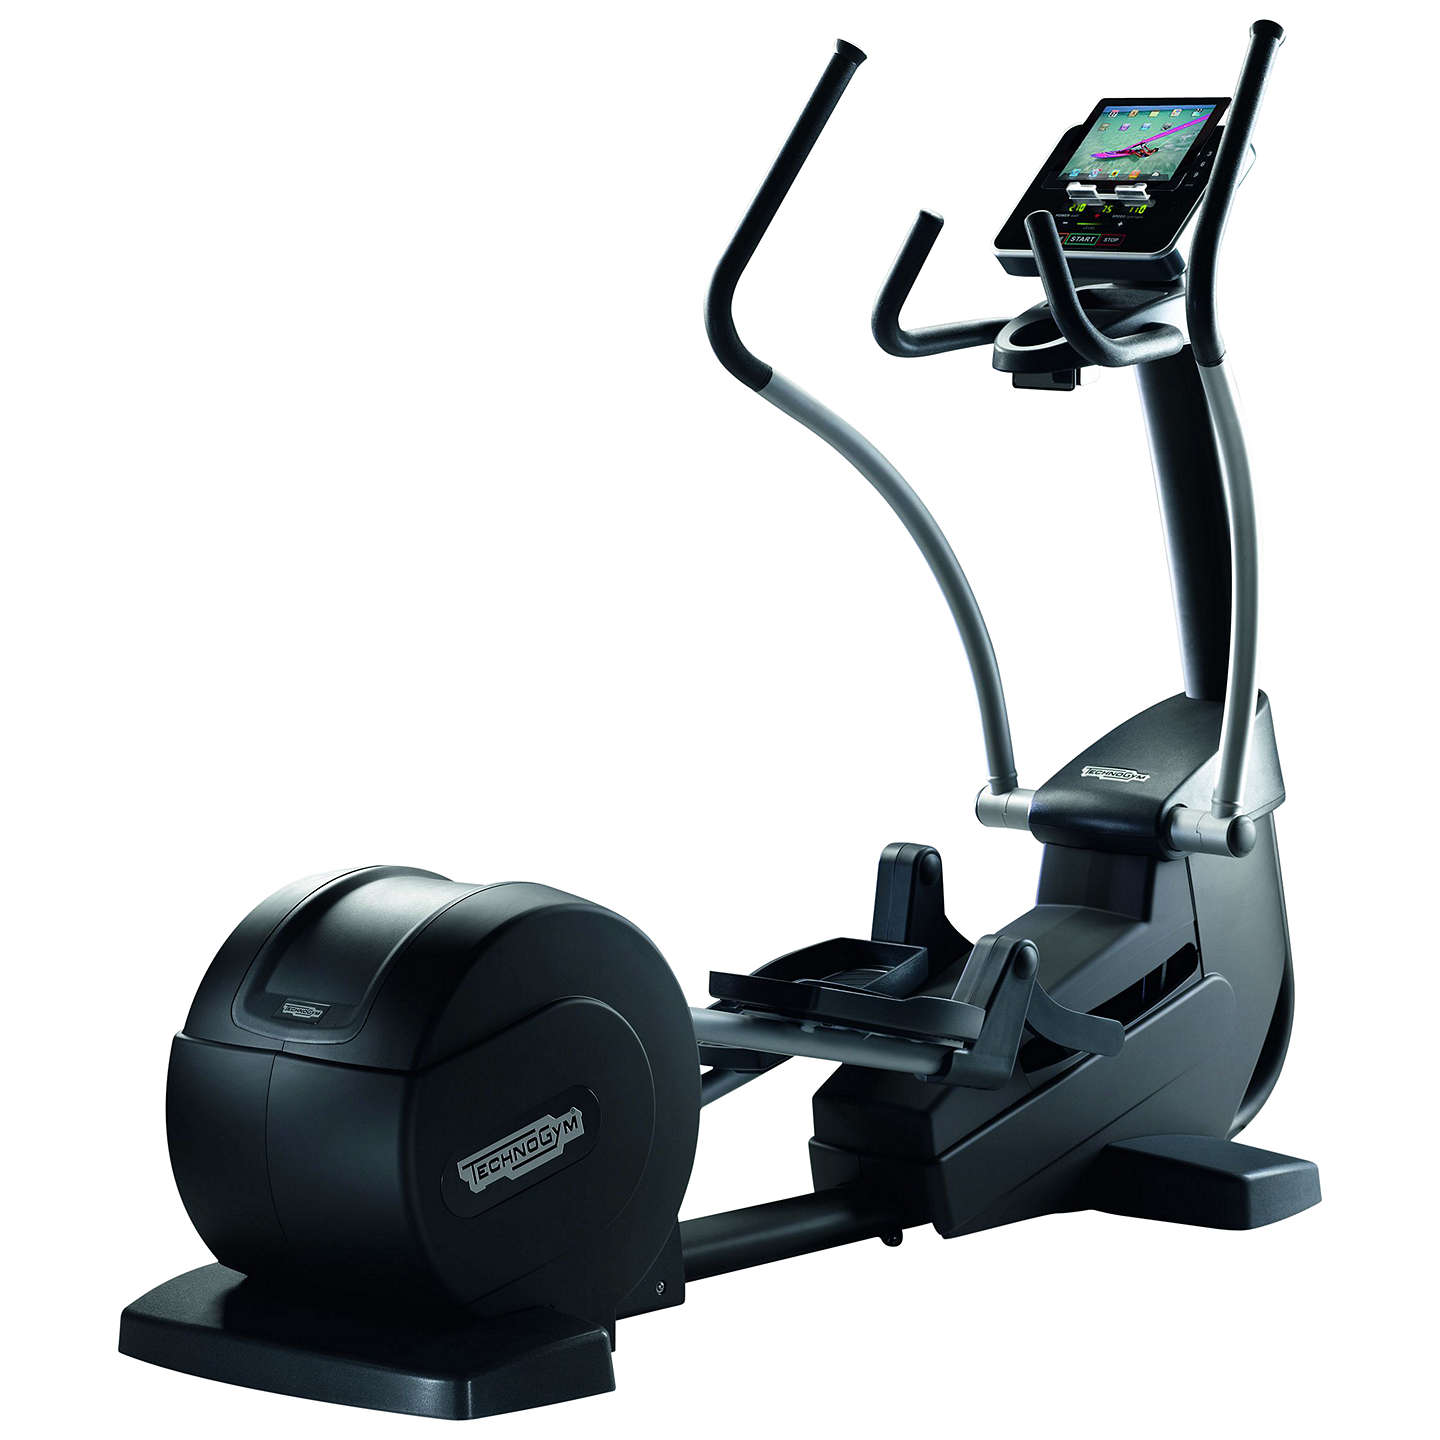 technogym synchro forma cross trainer with training link at john lewis. Black Bedroom Furniture Sets. Home Design Ideas